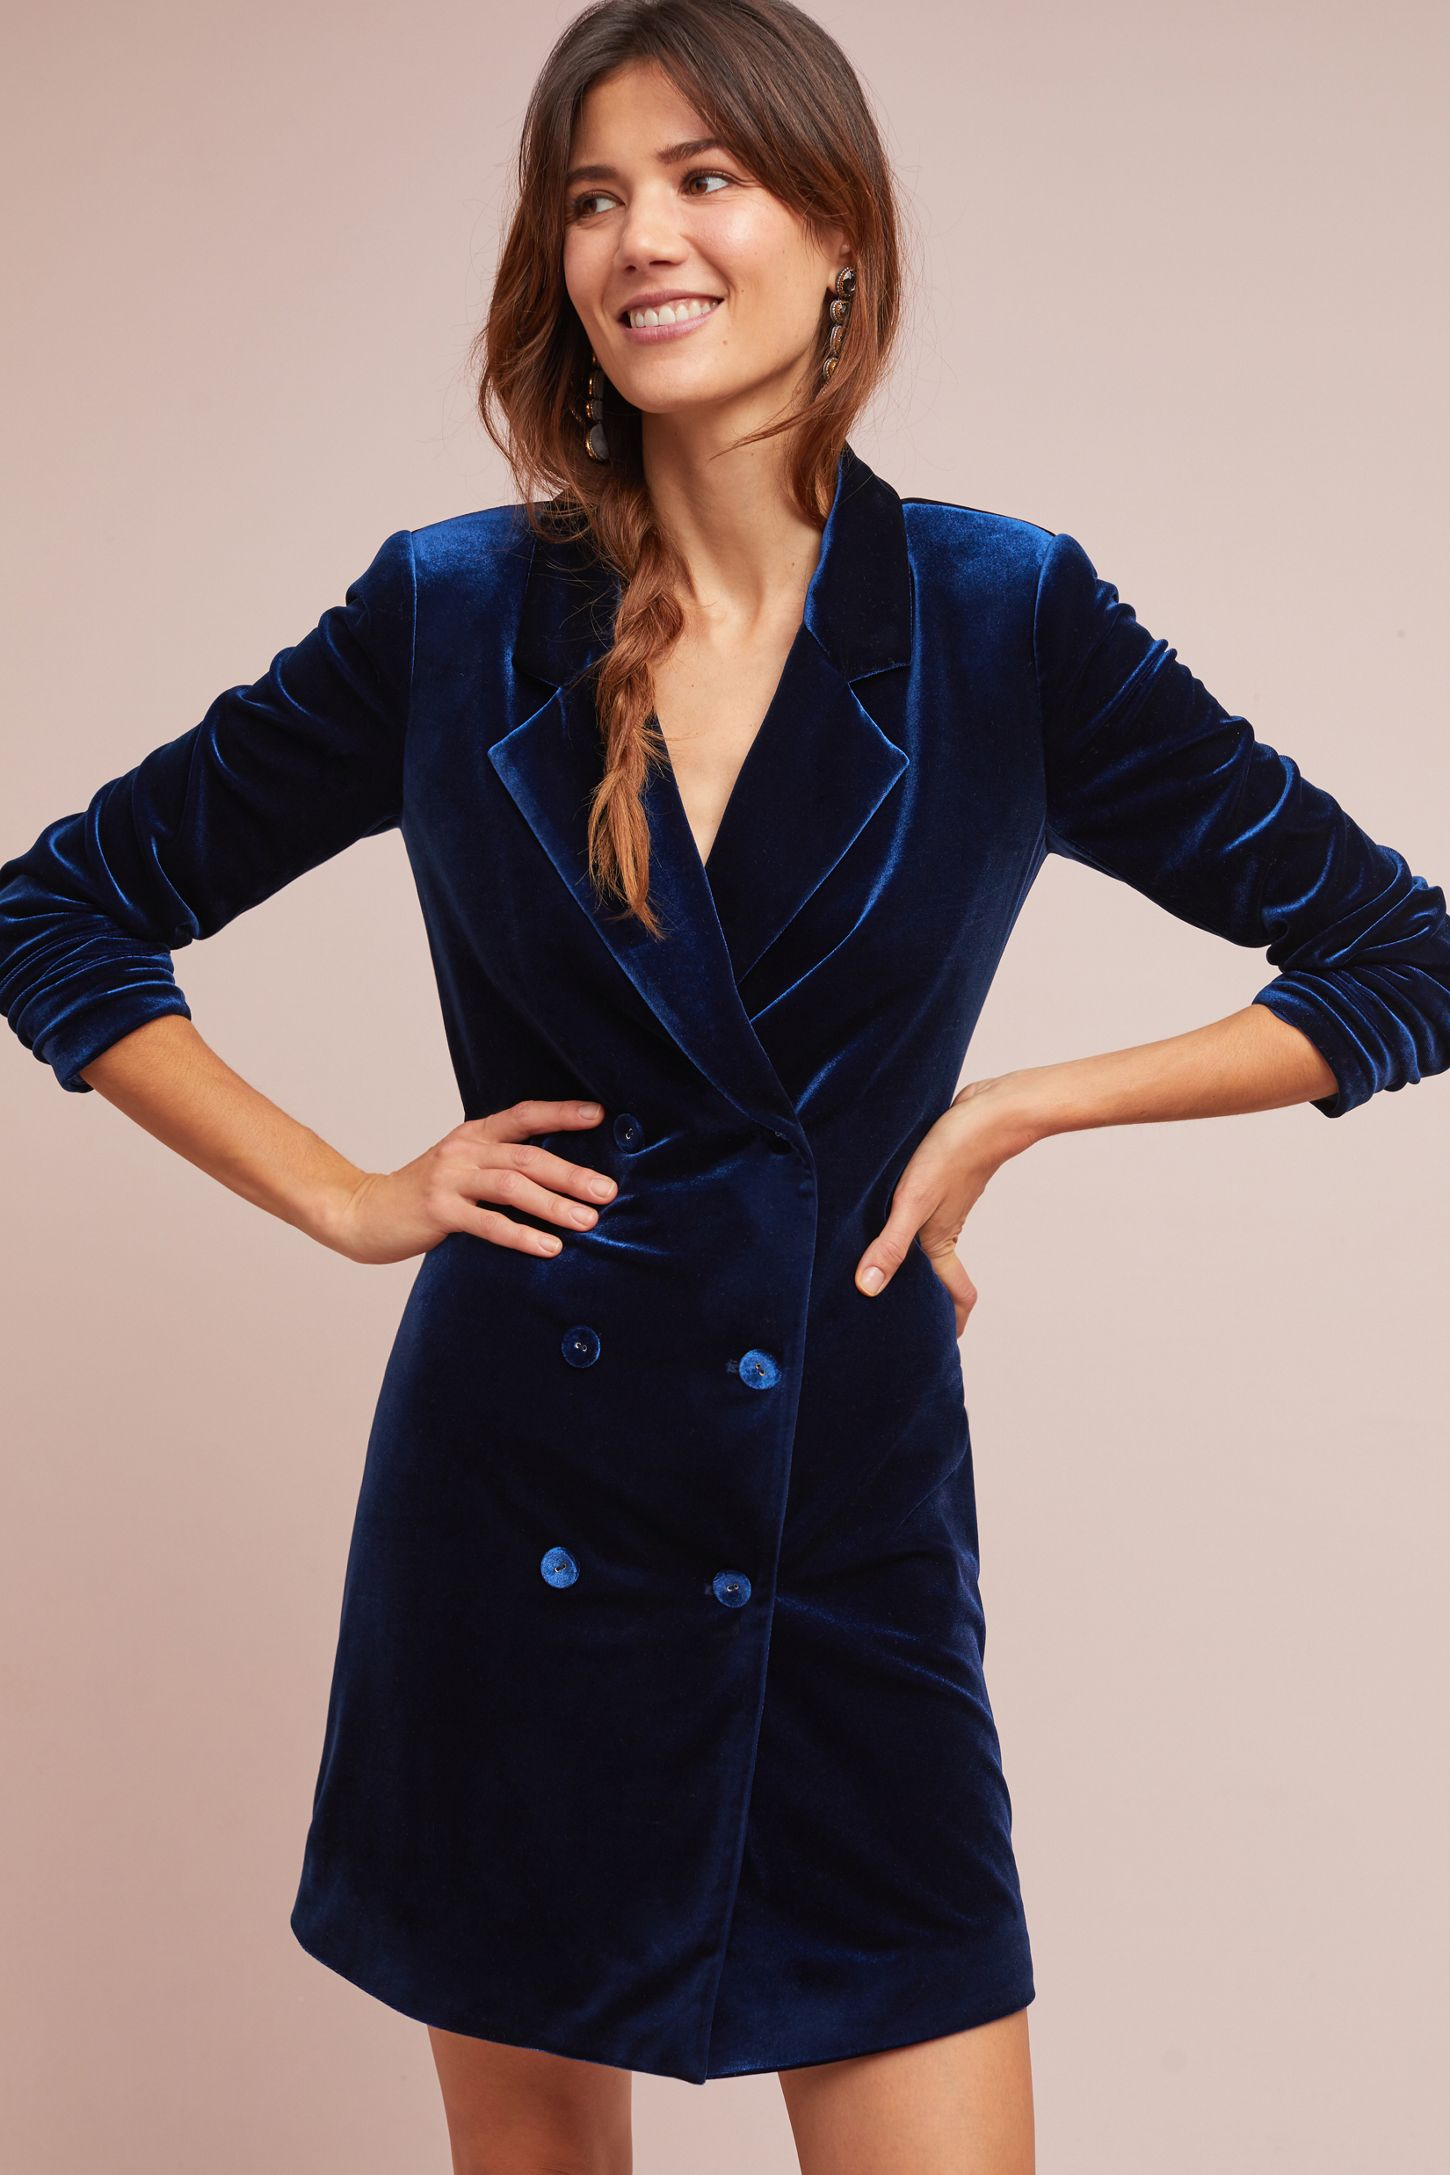 004e51c9eb2ae Yumi Kim Velvet Blazer Dress | Anthropologie